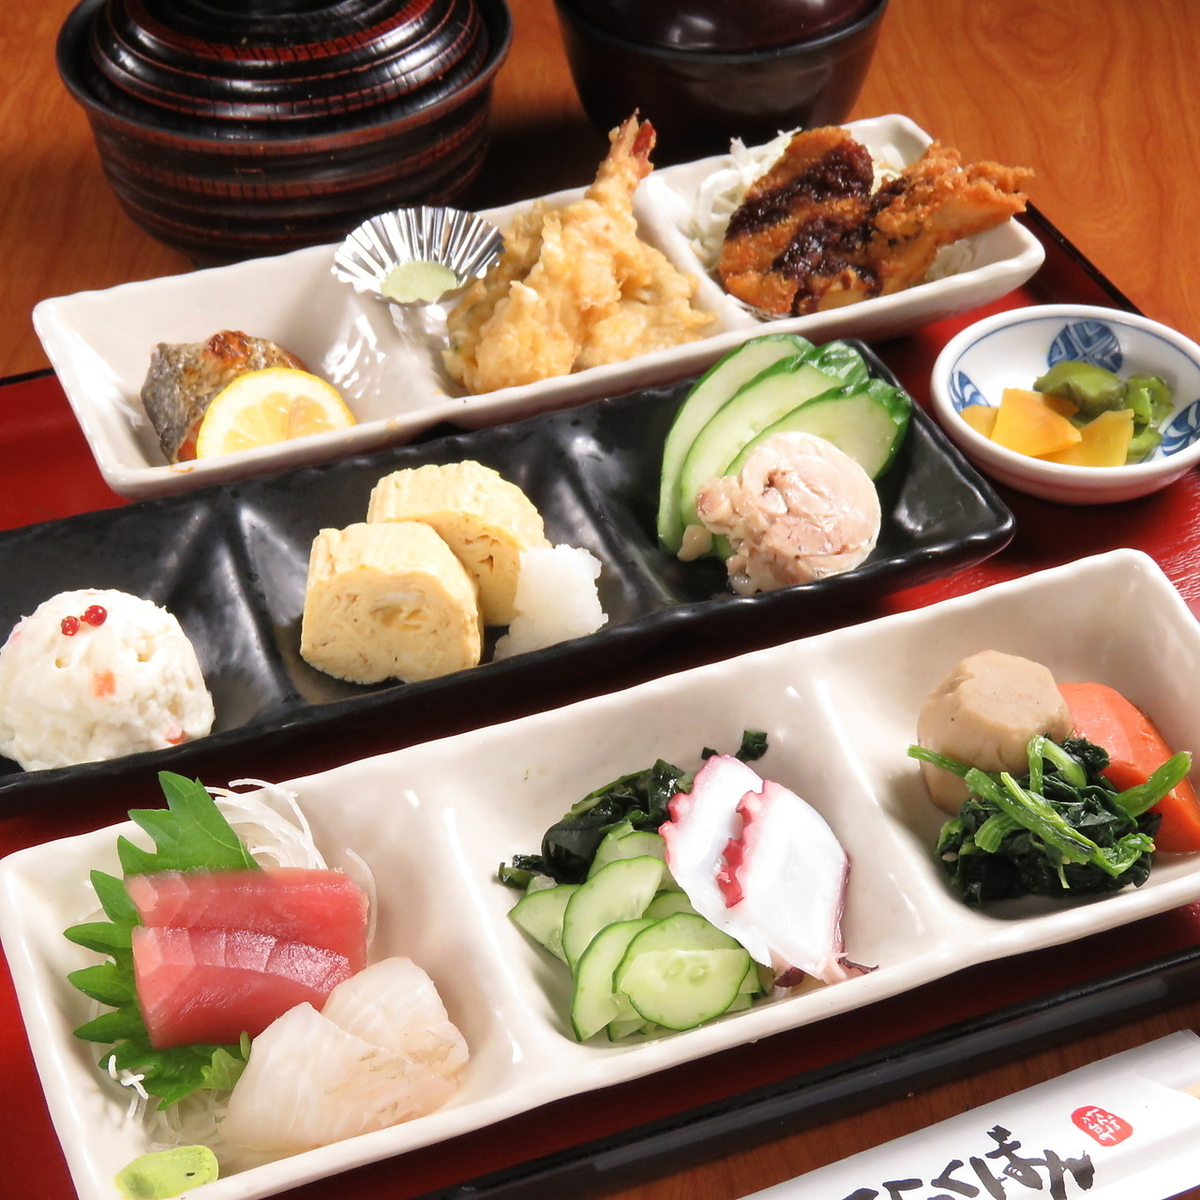 Lunch set meals are all 700 yen range